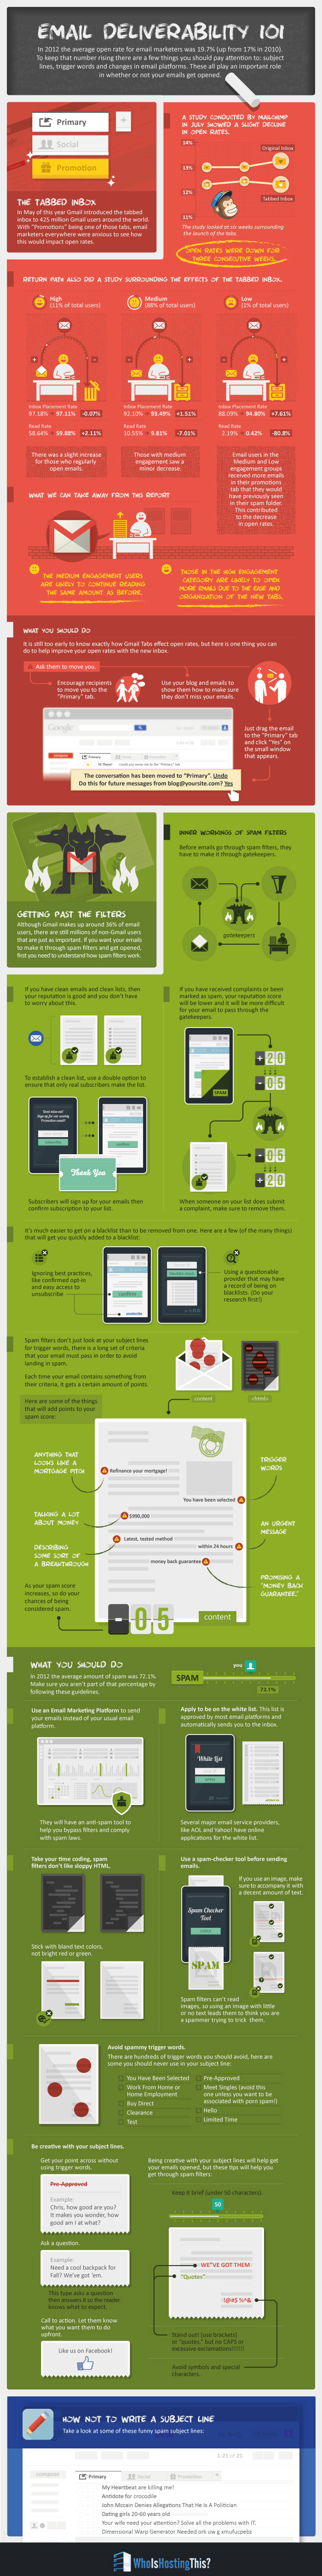 Email-Deliverability-101